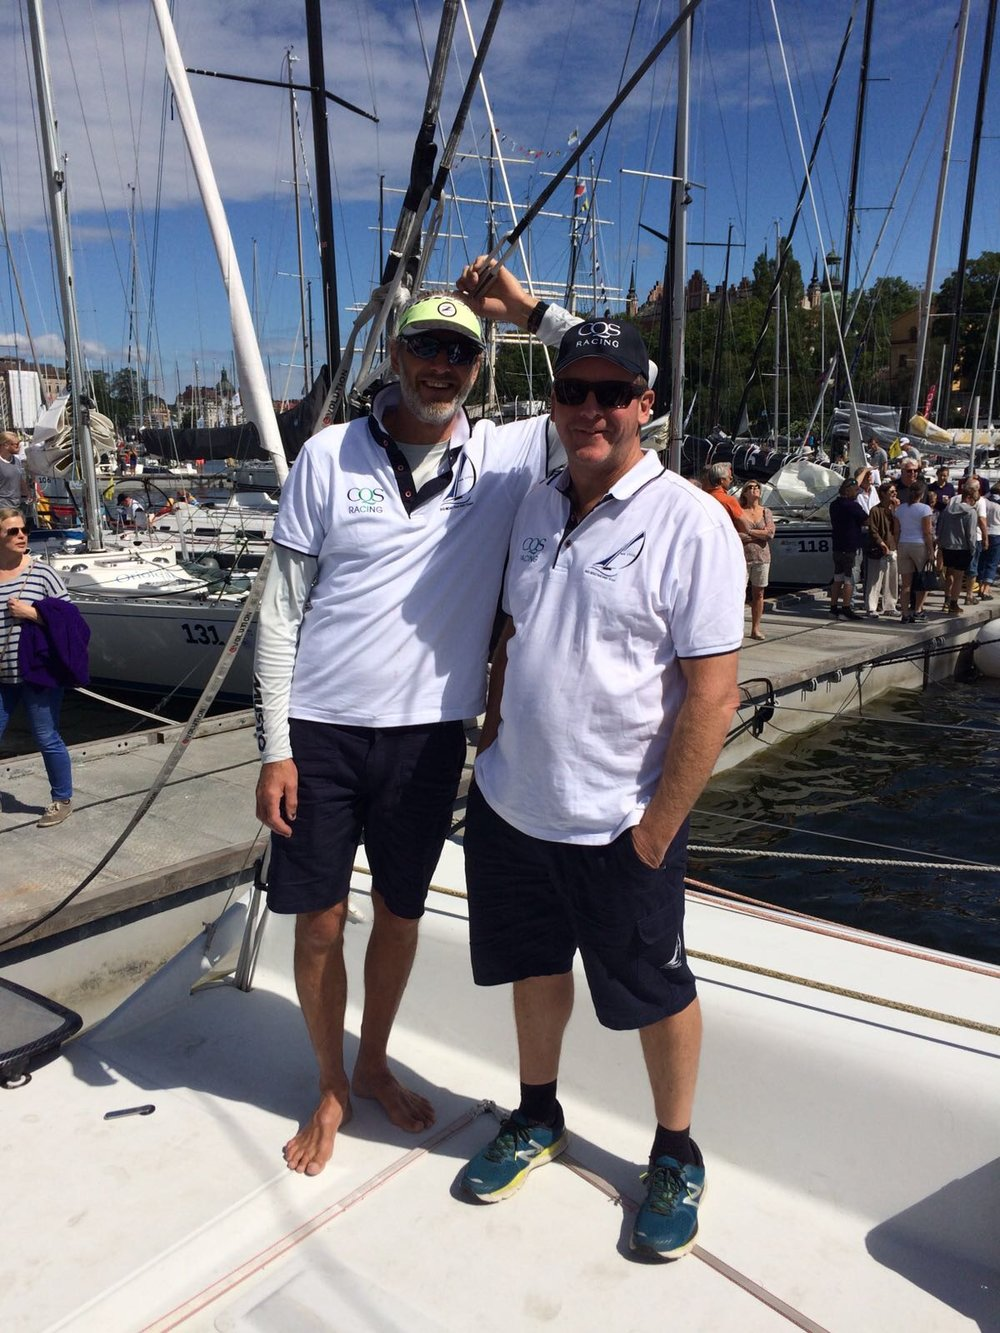 Picture: Per Jonsson and Greg Prescott ahead of the KSSS AF Offshore Race